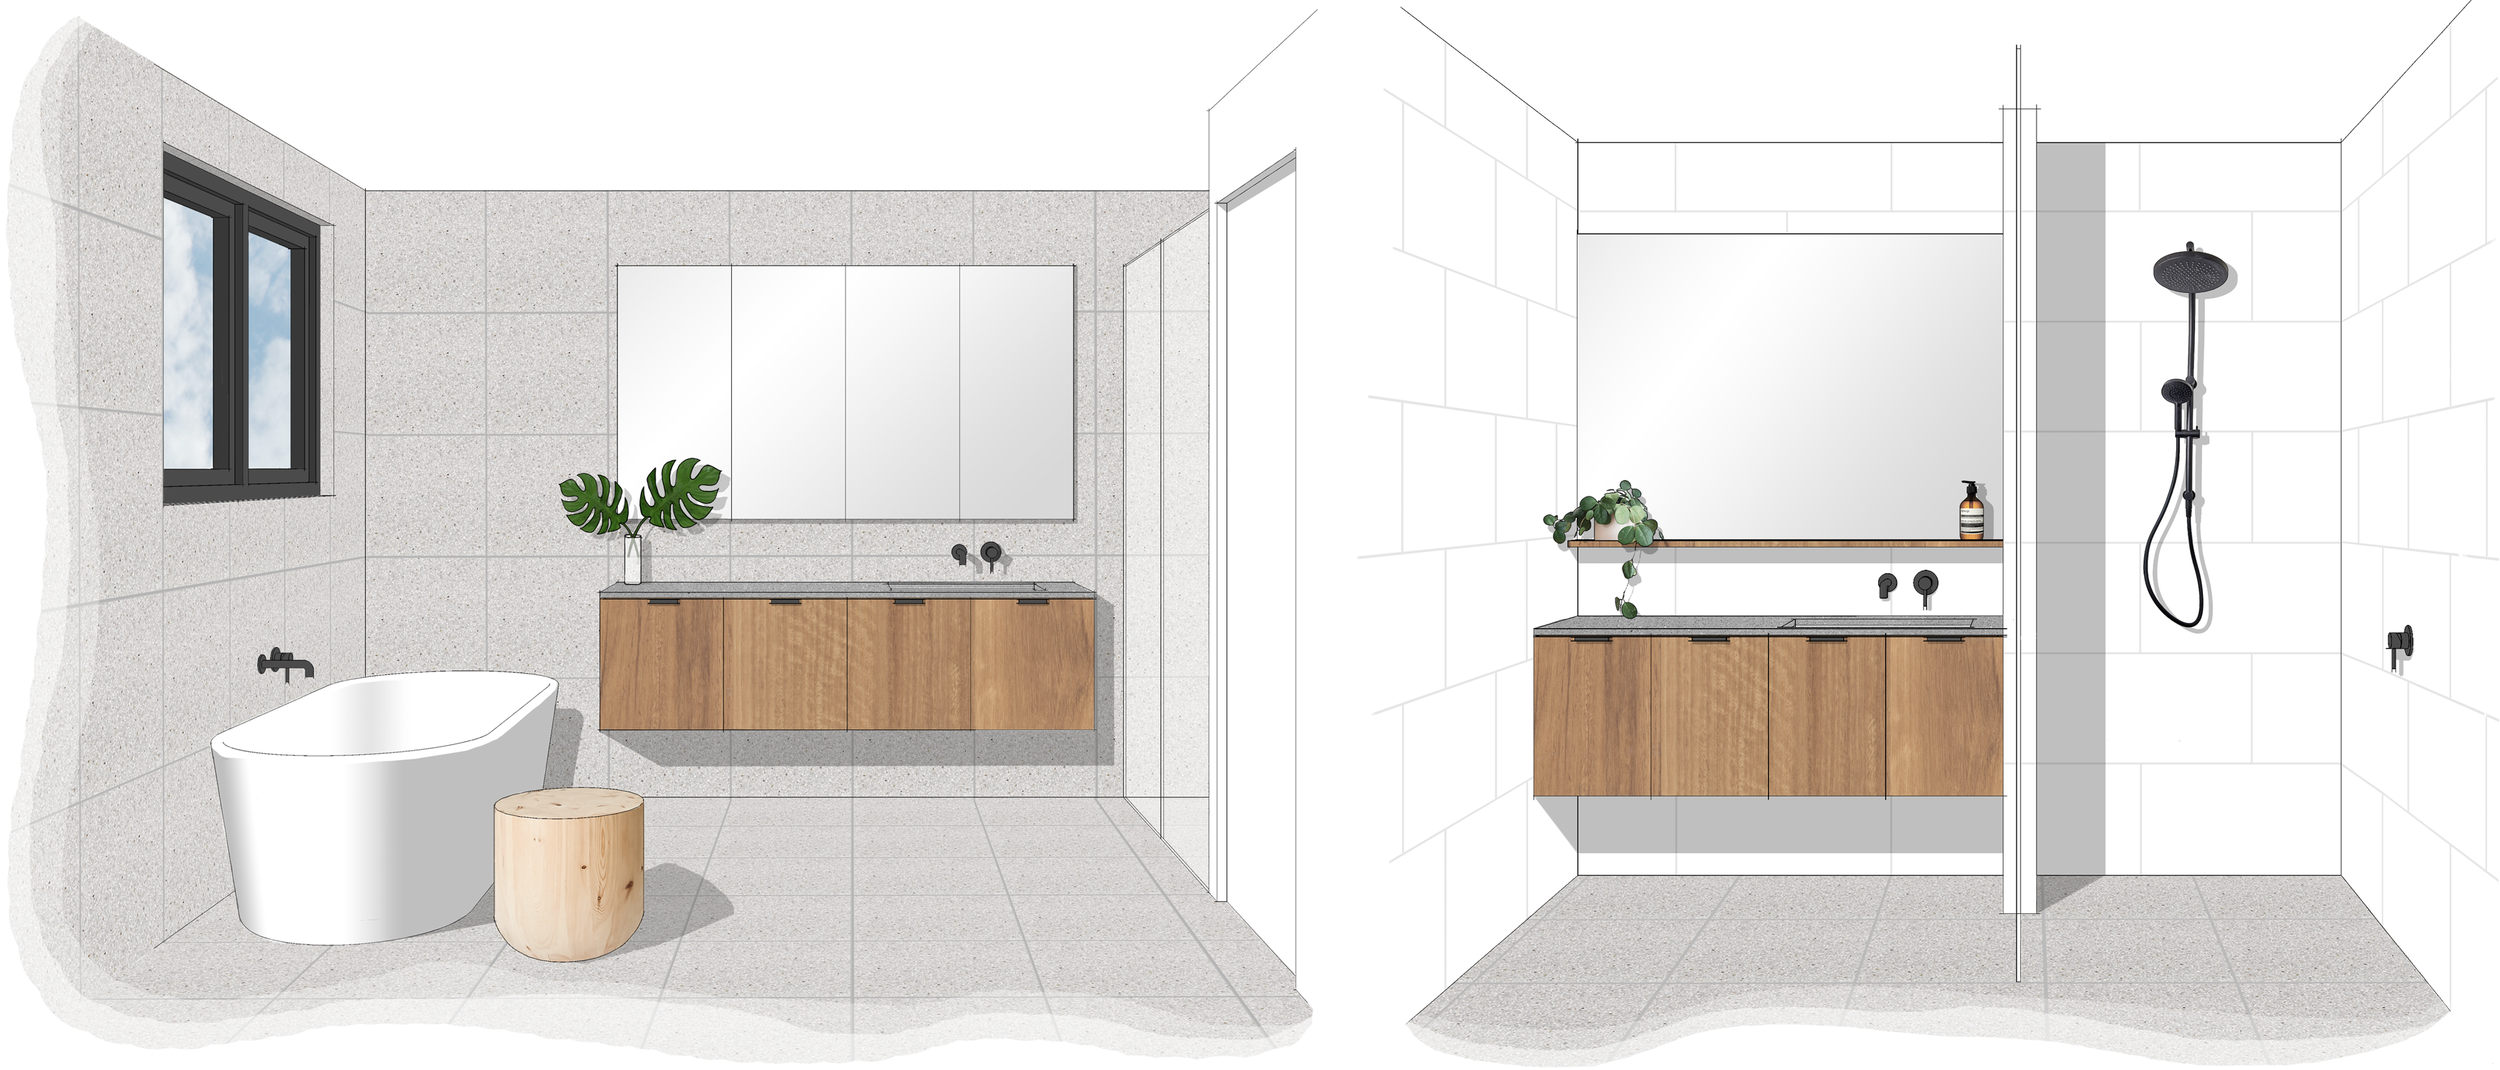 Concept Interior Design - Bathroom and Ensuite 3D Image, Harrison Residence. LO Design Studio Canberra Interior Designer